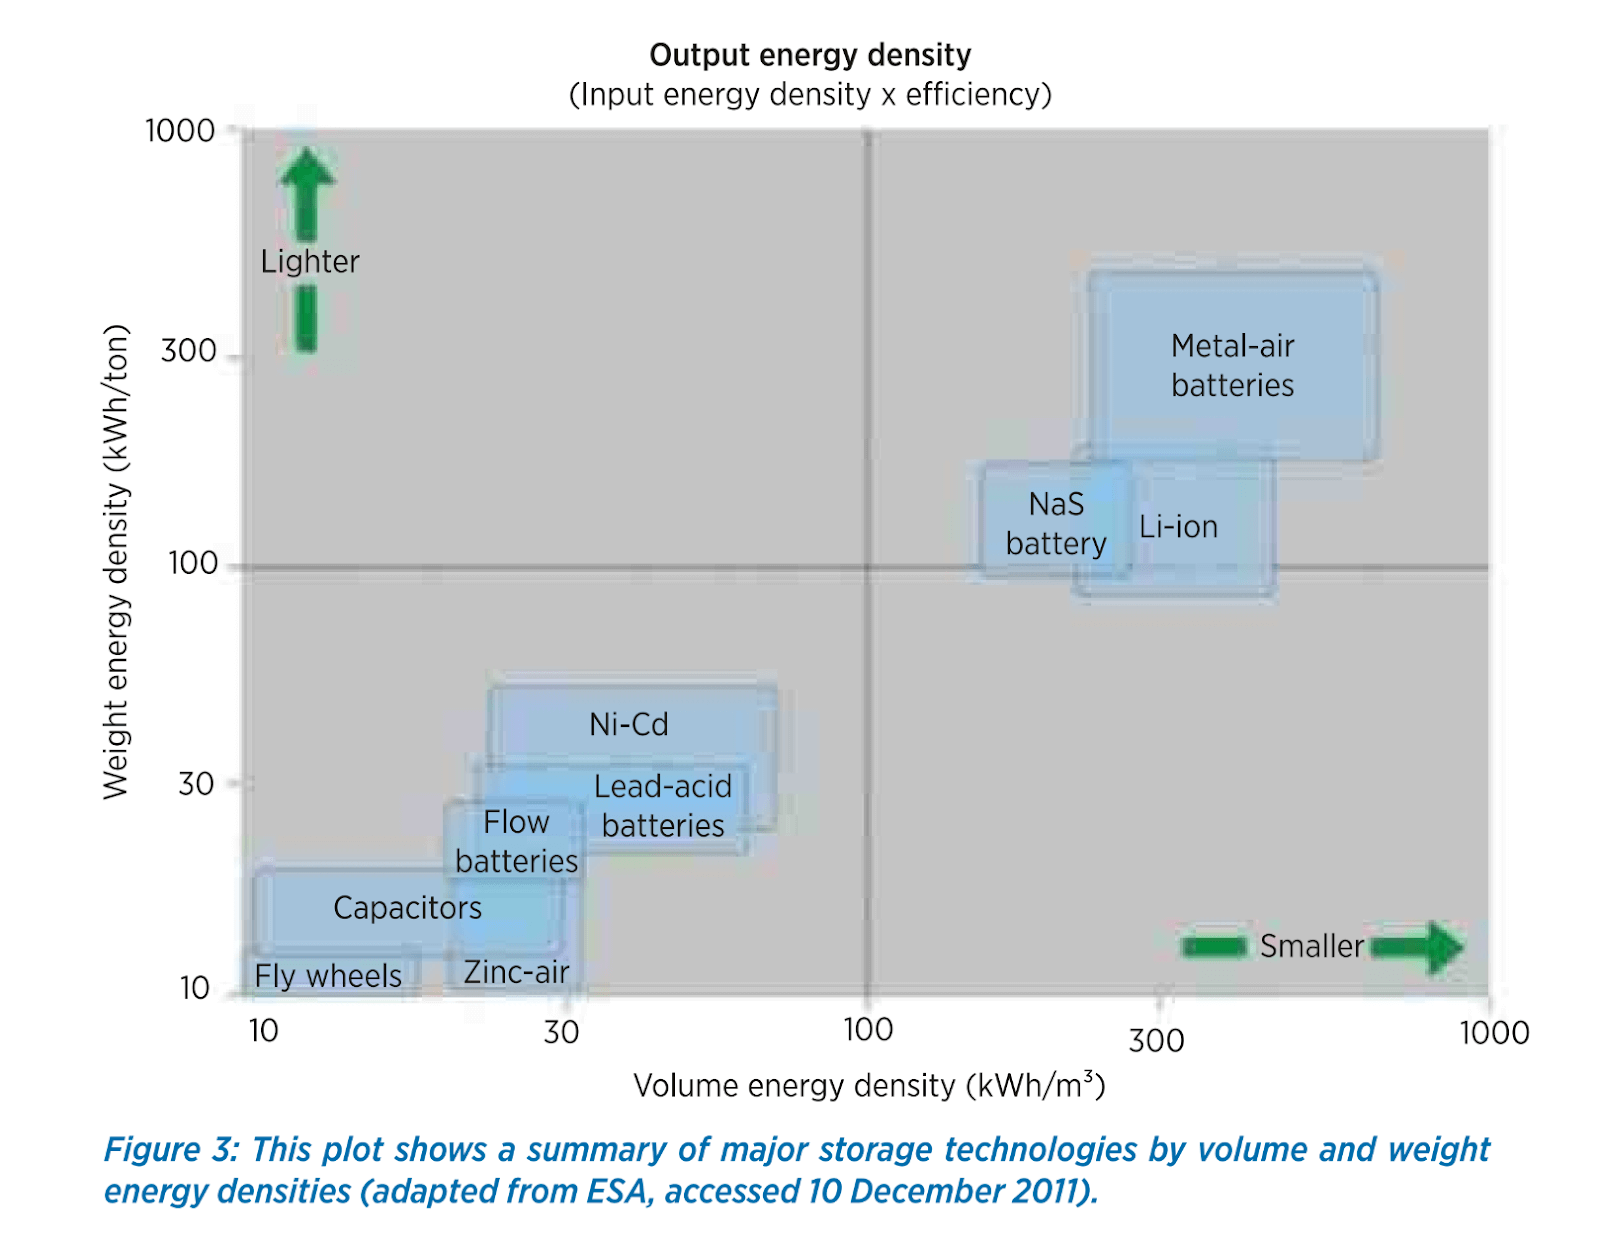 Summary of major storage technologies by volume and weight energy density